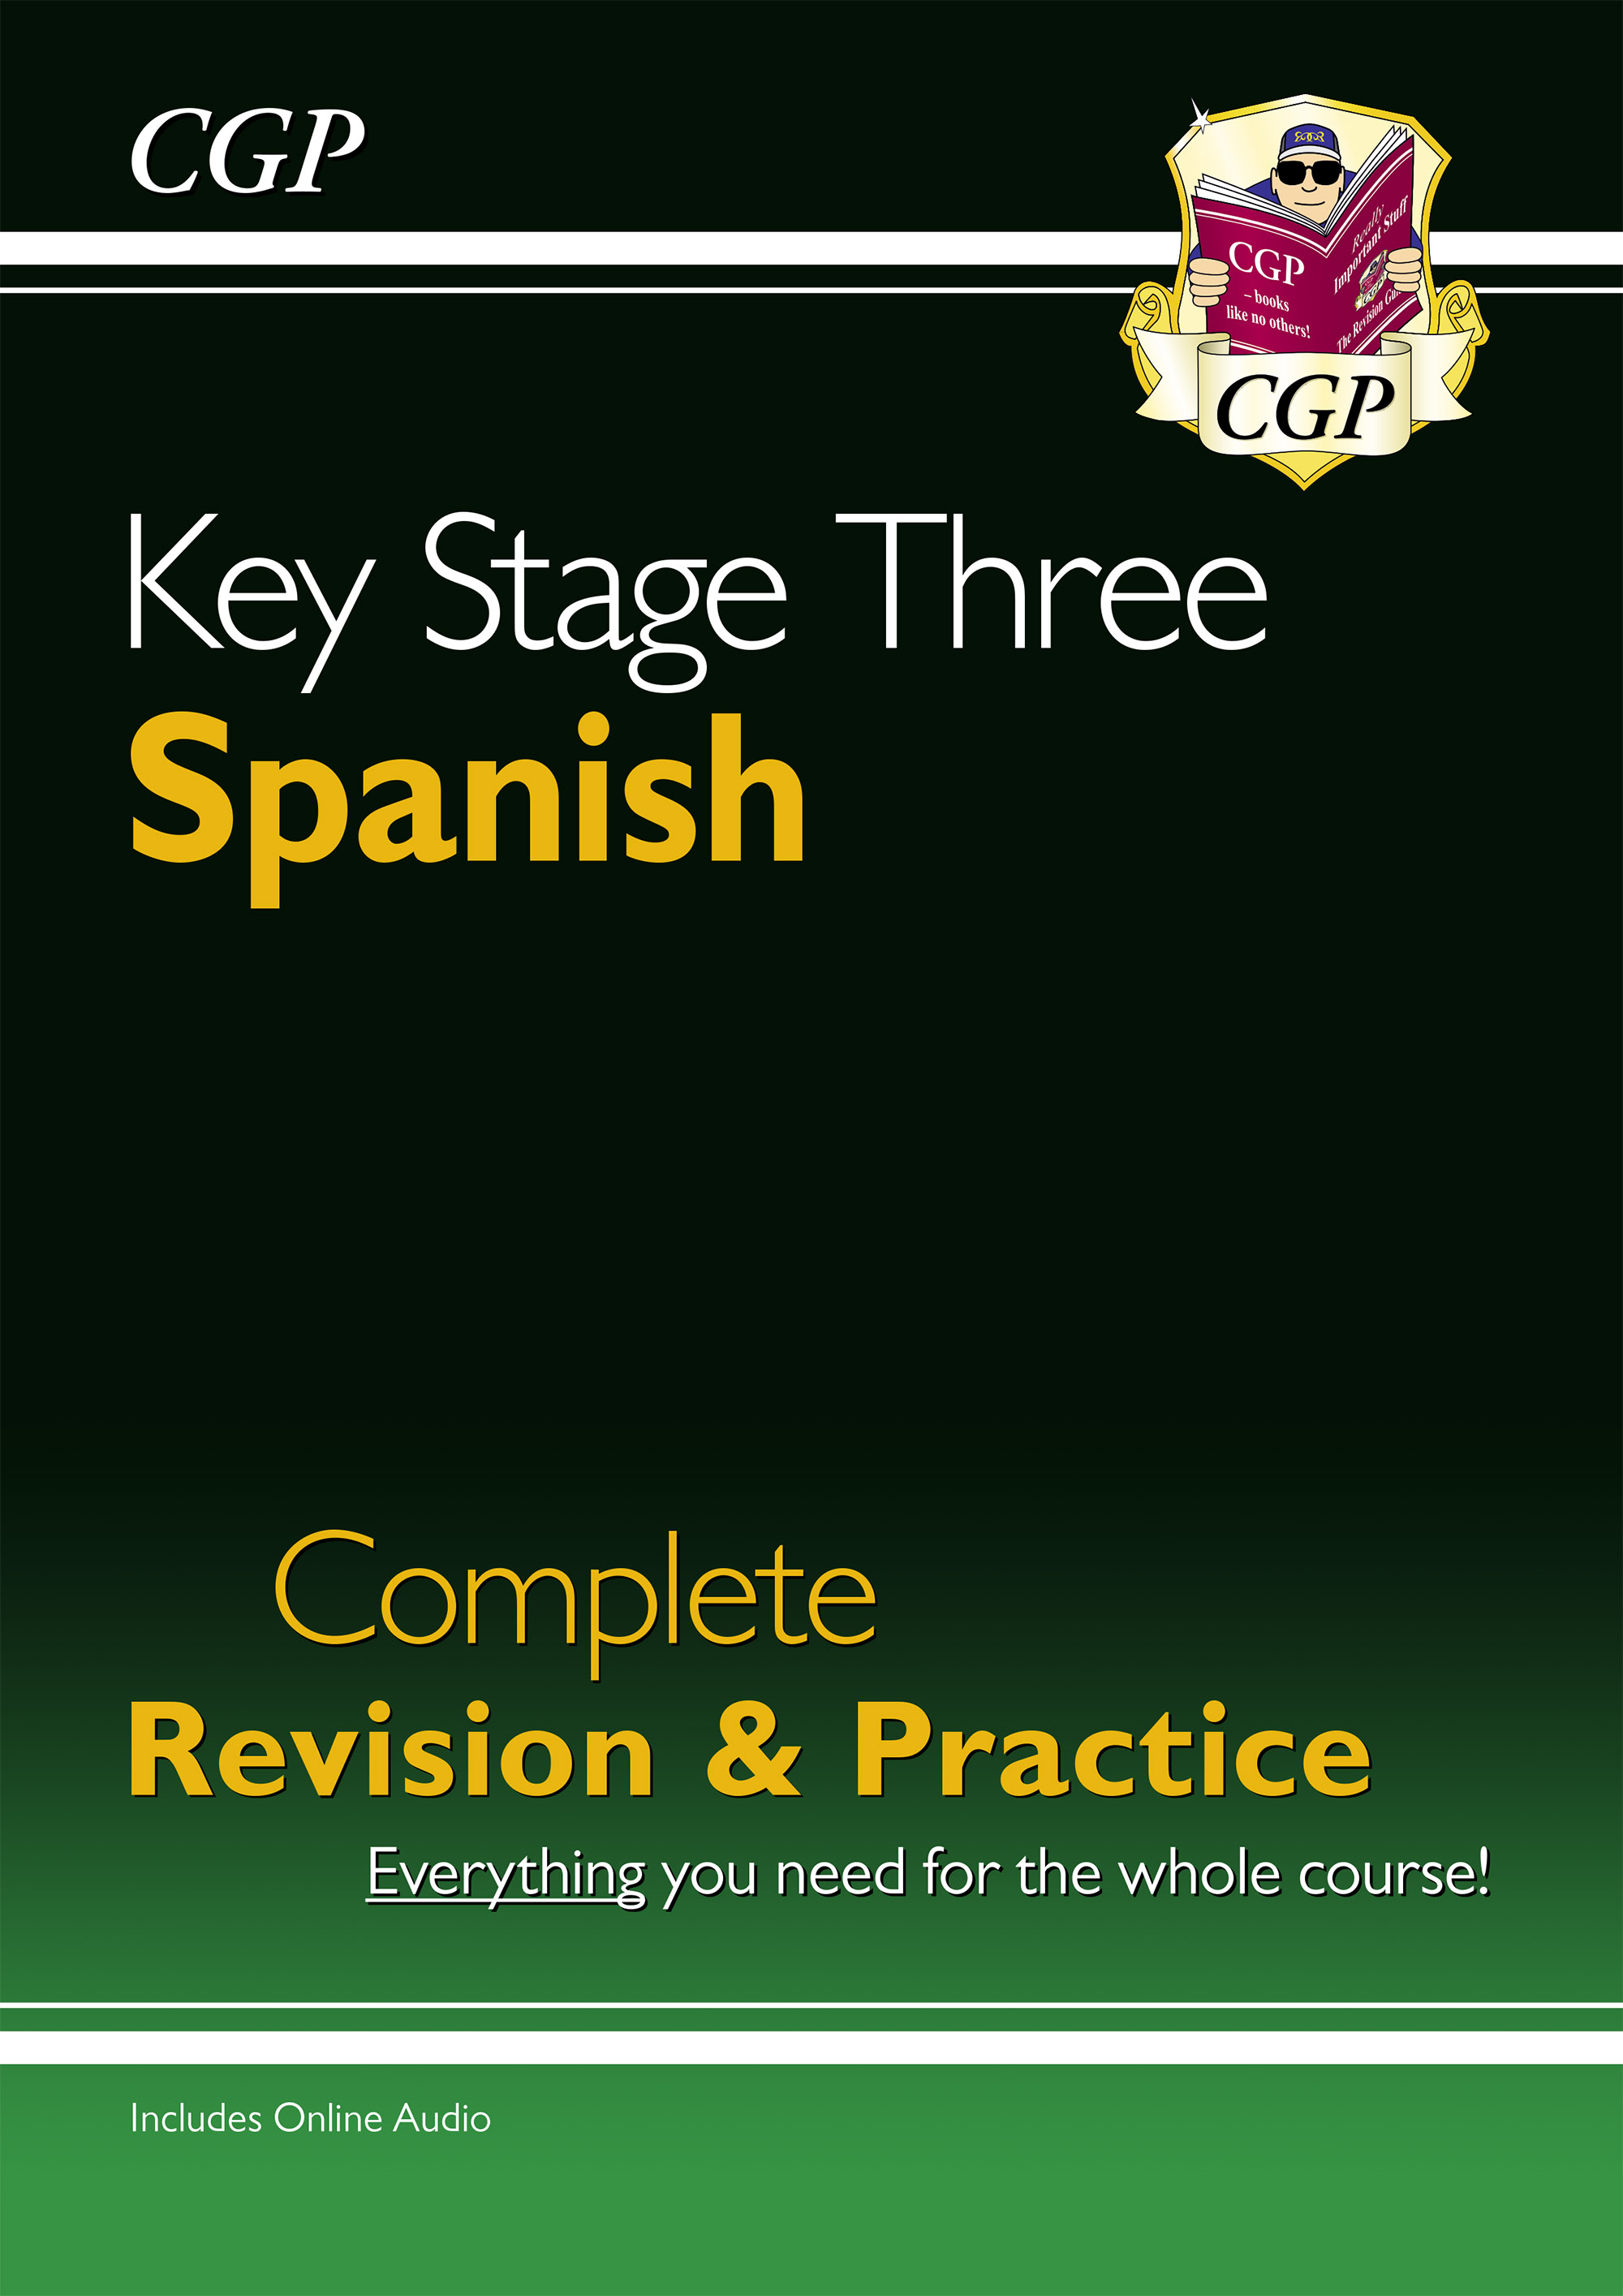 SPHS32D - New KS3 Spanish Complete Revision & Practice with Free Online Audio